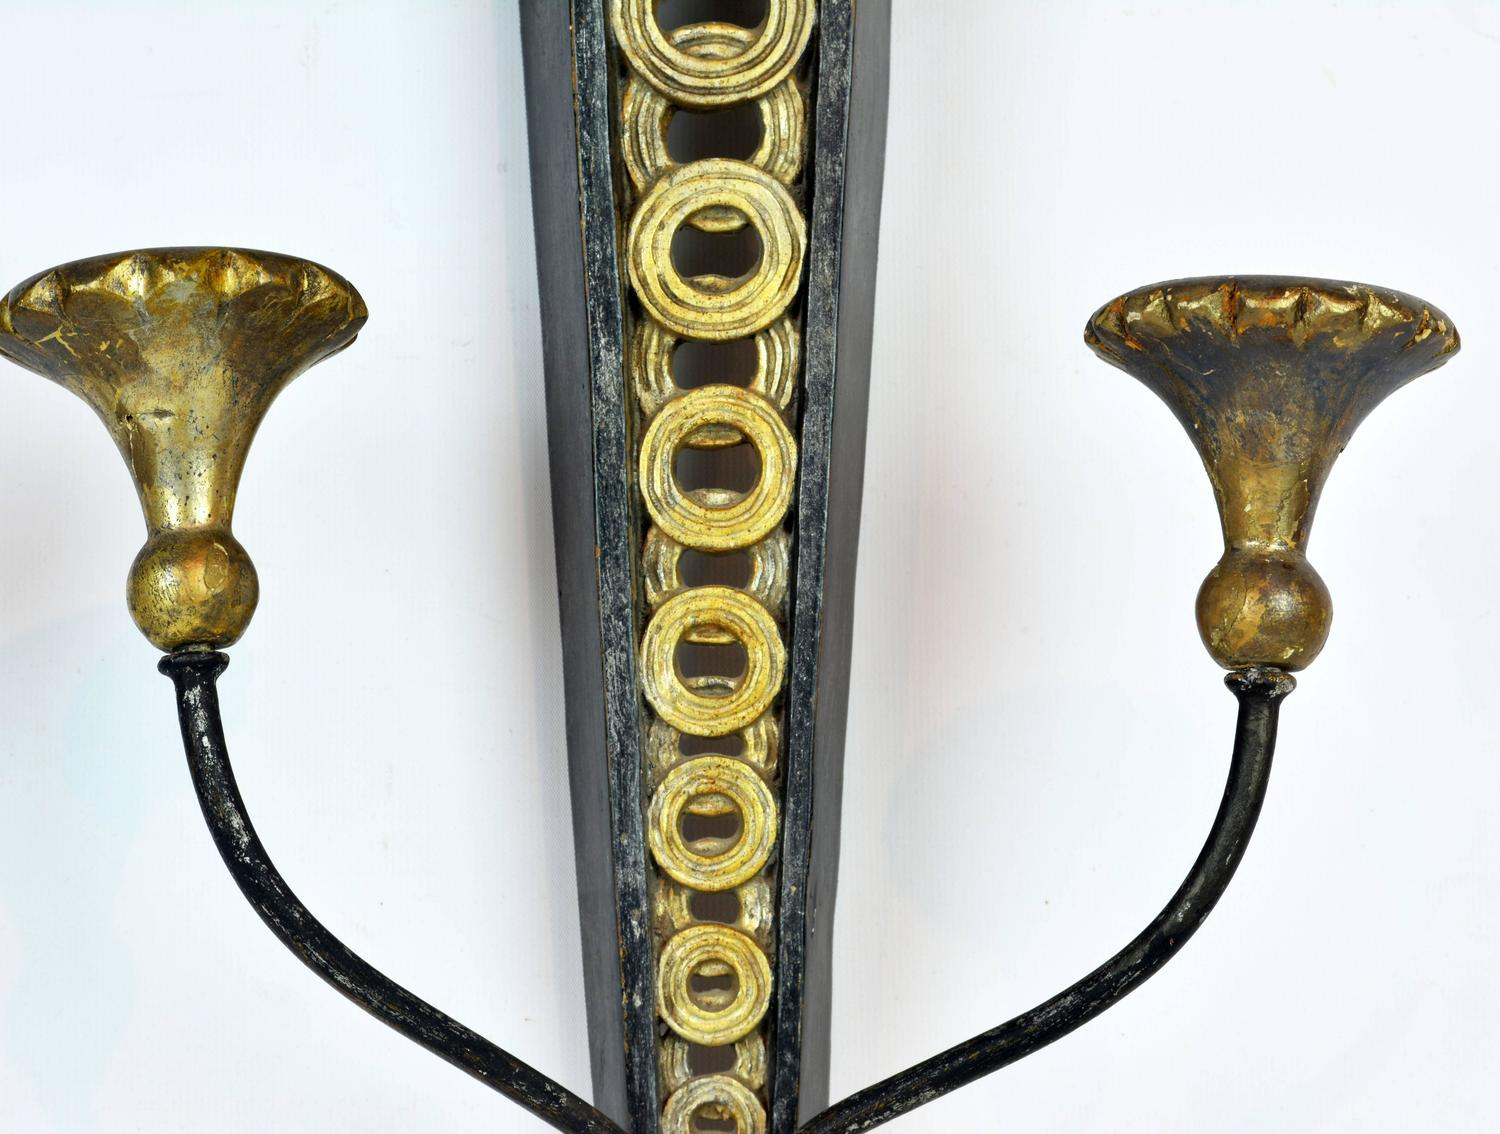 Italian Candle Wall Sconces : Pair of Mid-Century Neoclassical Style Italian Palladio Wall Sconces for Candles For Sale at 1stdibs